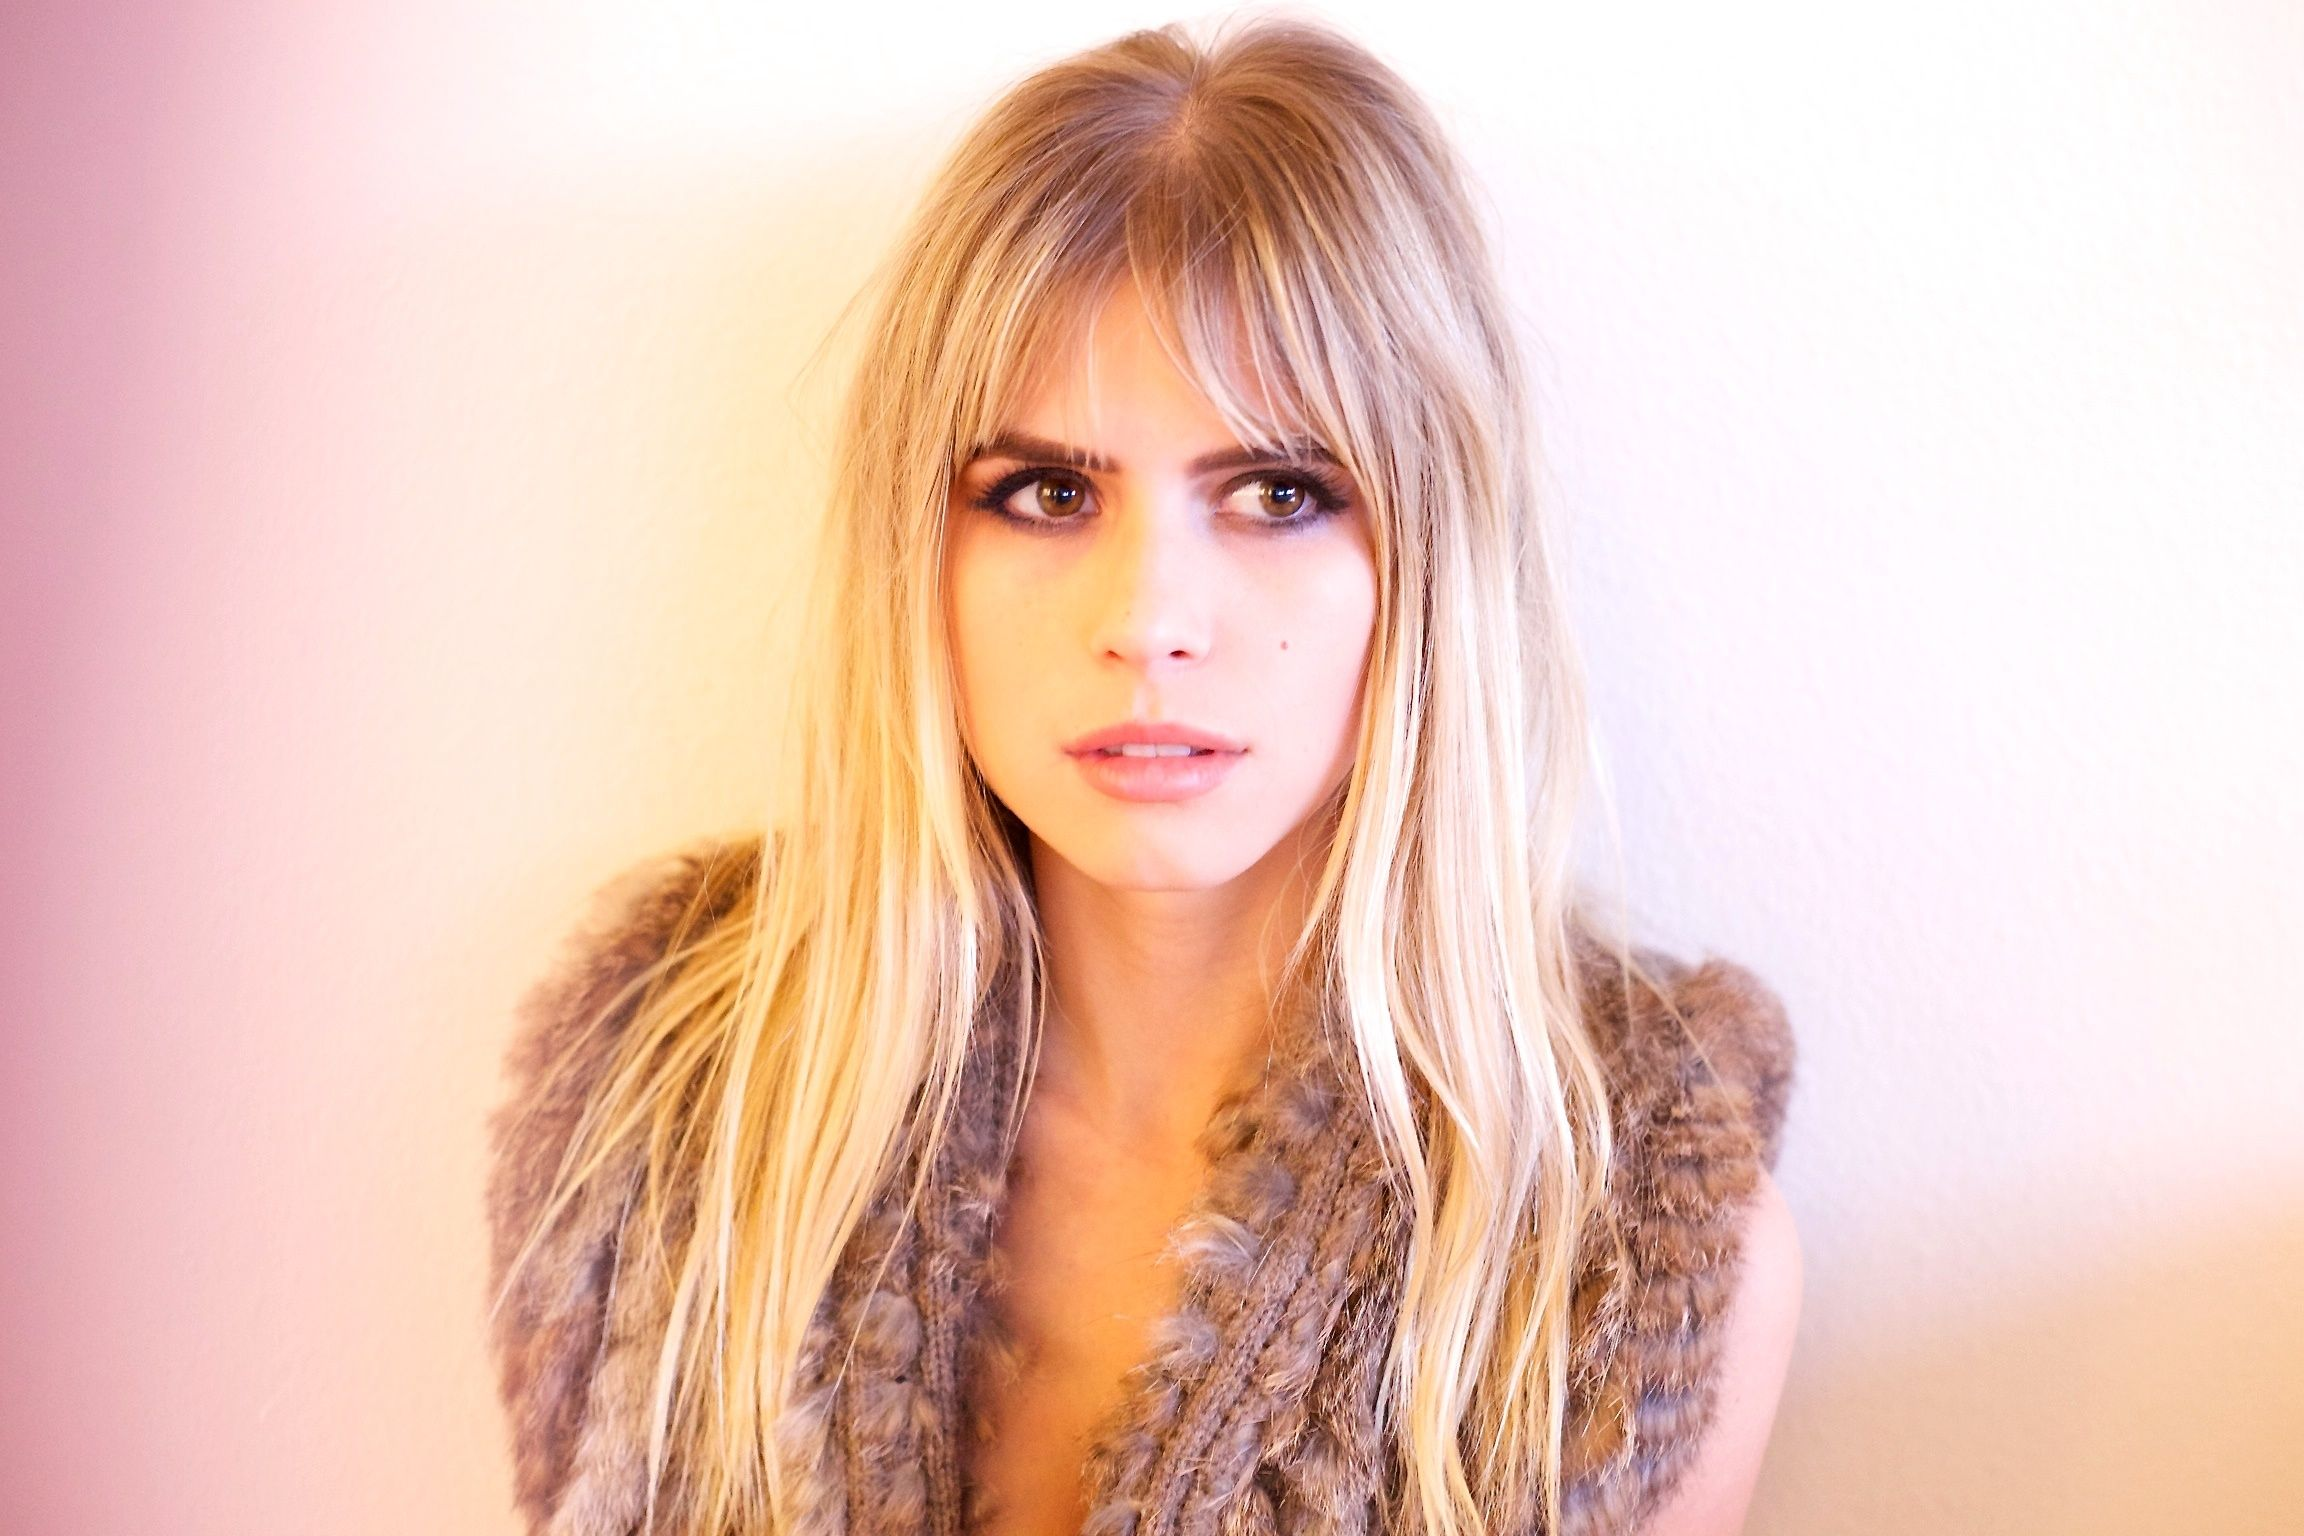 carlson young redditcarlson young gif, carlson young icons, carlson young pretty little liars, carlson young site, carlson young gif icons, carlson young png, carlson young icons tumblr, carlson young listal, carlson young birthday, carlson young daily, carlson young reddit, carlson young imdb, carlson young films, carlson young pack, carlson young facebook, carlson young insta, carlson young instagram, carlson young fan site, carlson young twitter pack, carlson young interview